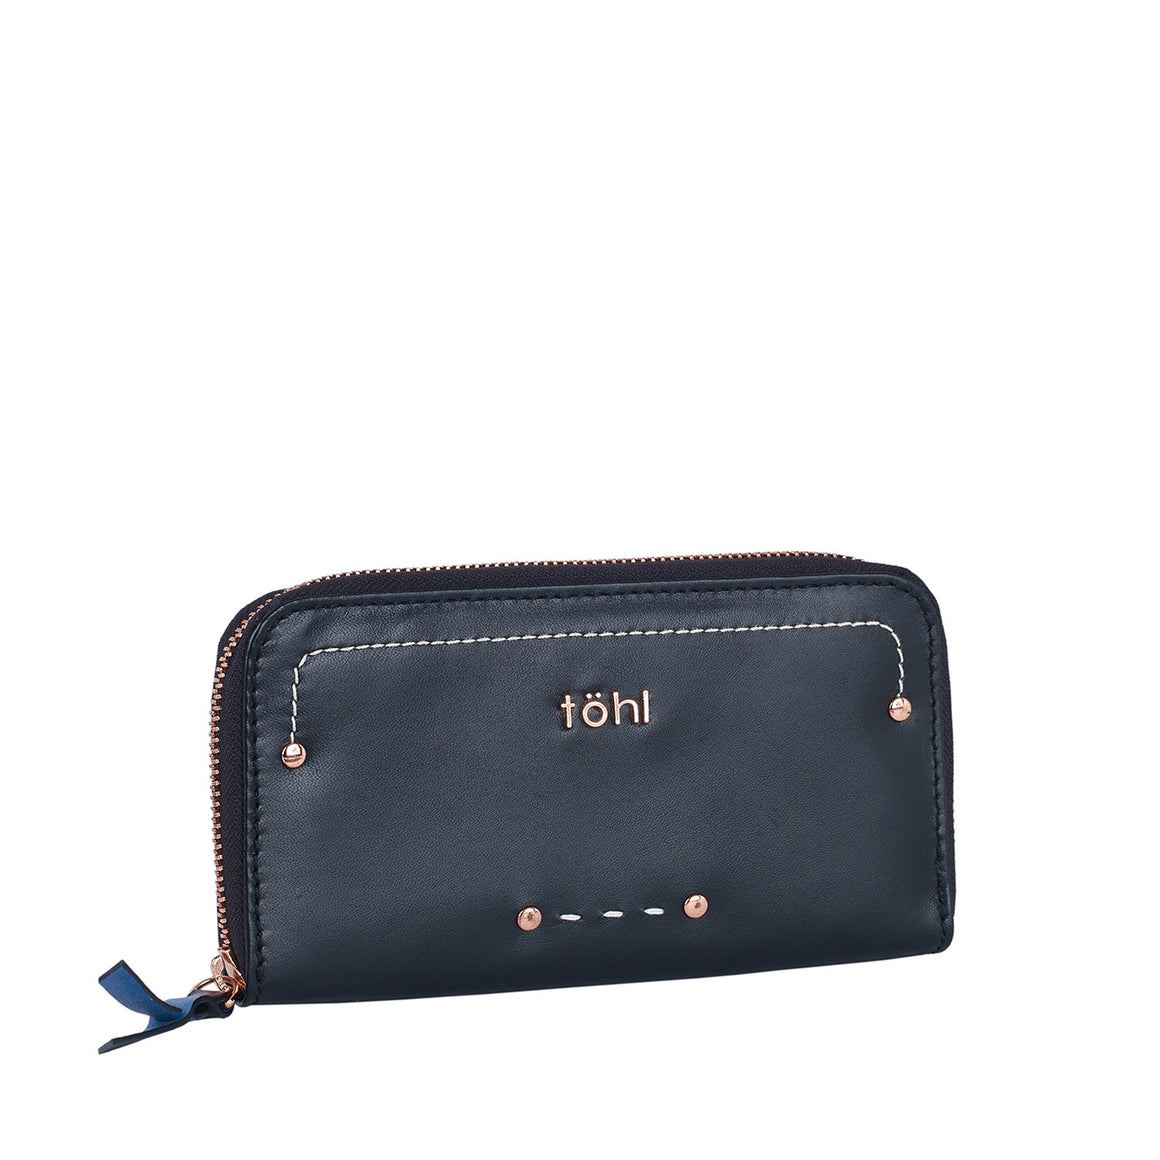 WT 0001 - TOHL YARA WOMEN'S ZIP WALLET - CHARCOAL BLACK